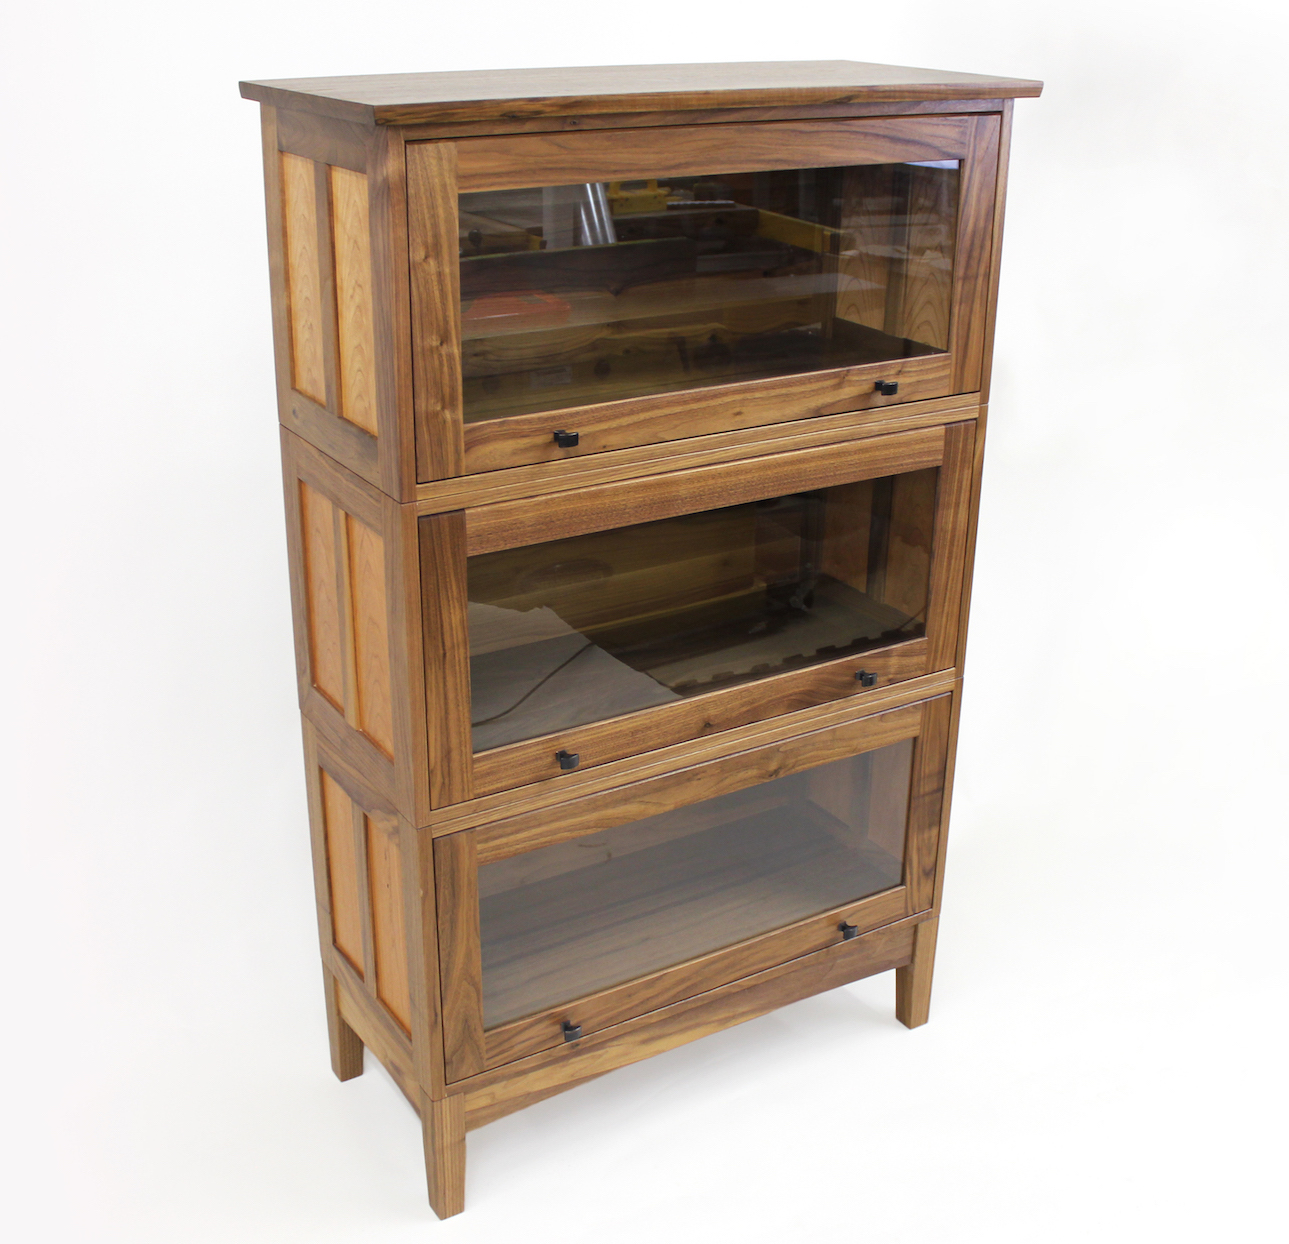 Barrister S Bookcase The Wood Whisperer Guild